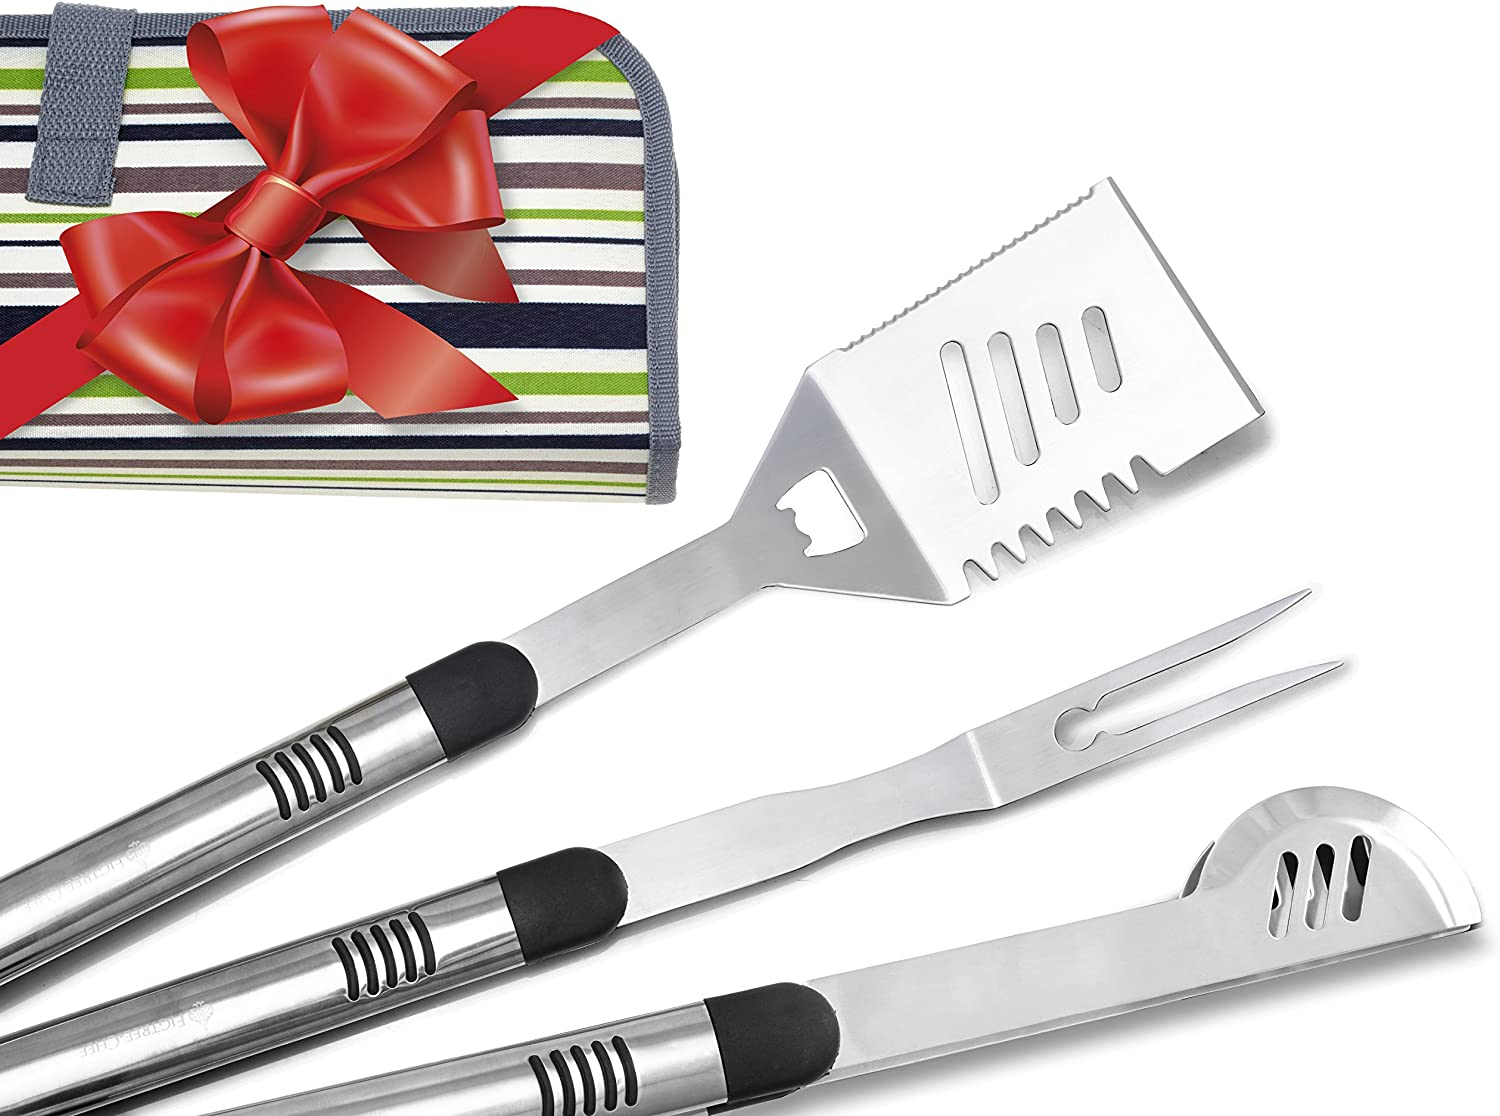 Figtree-Chef Long BBQ Tools – 3 Piece Grill Set with Case – Popular Gift Idea